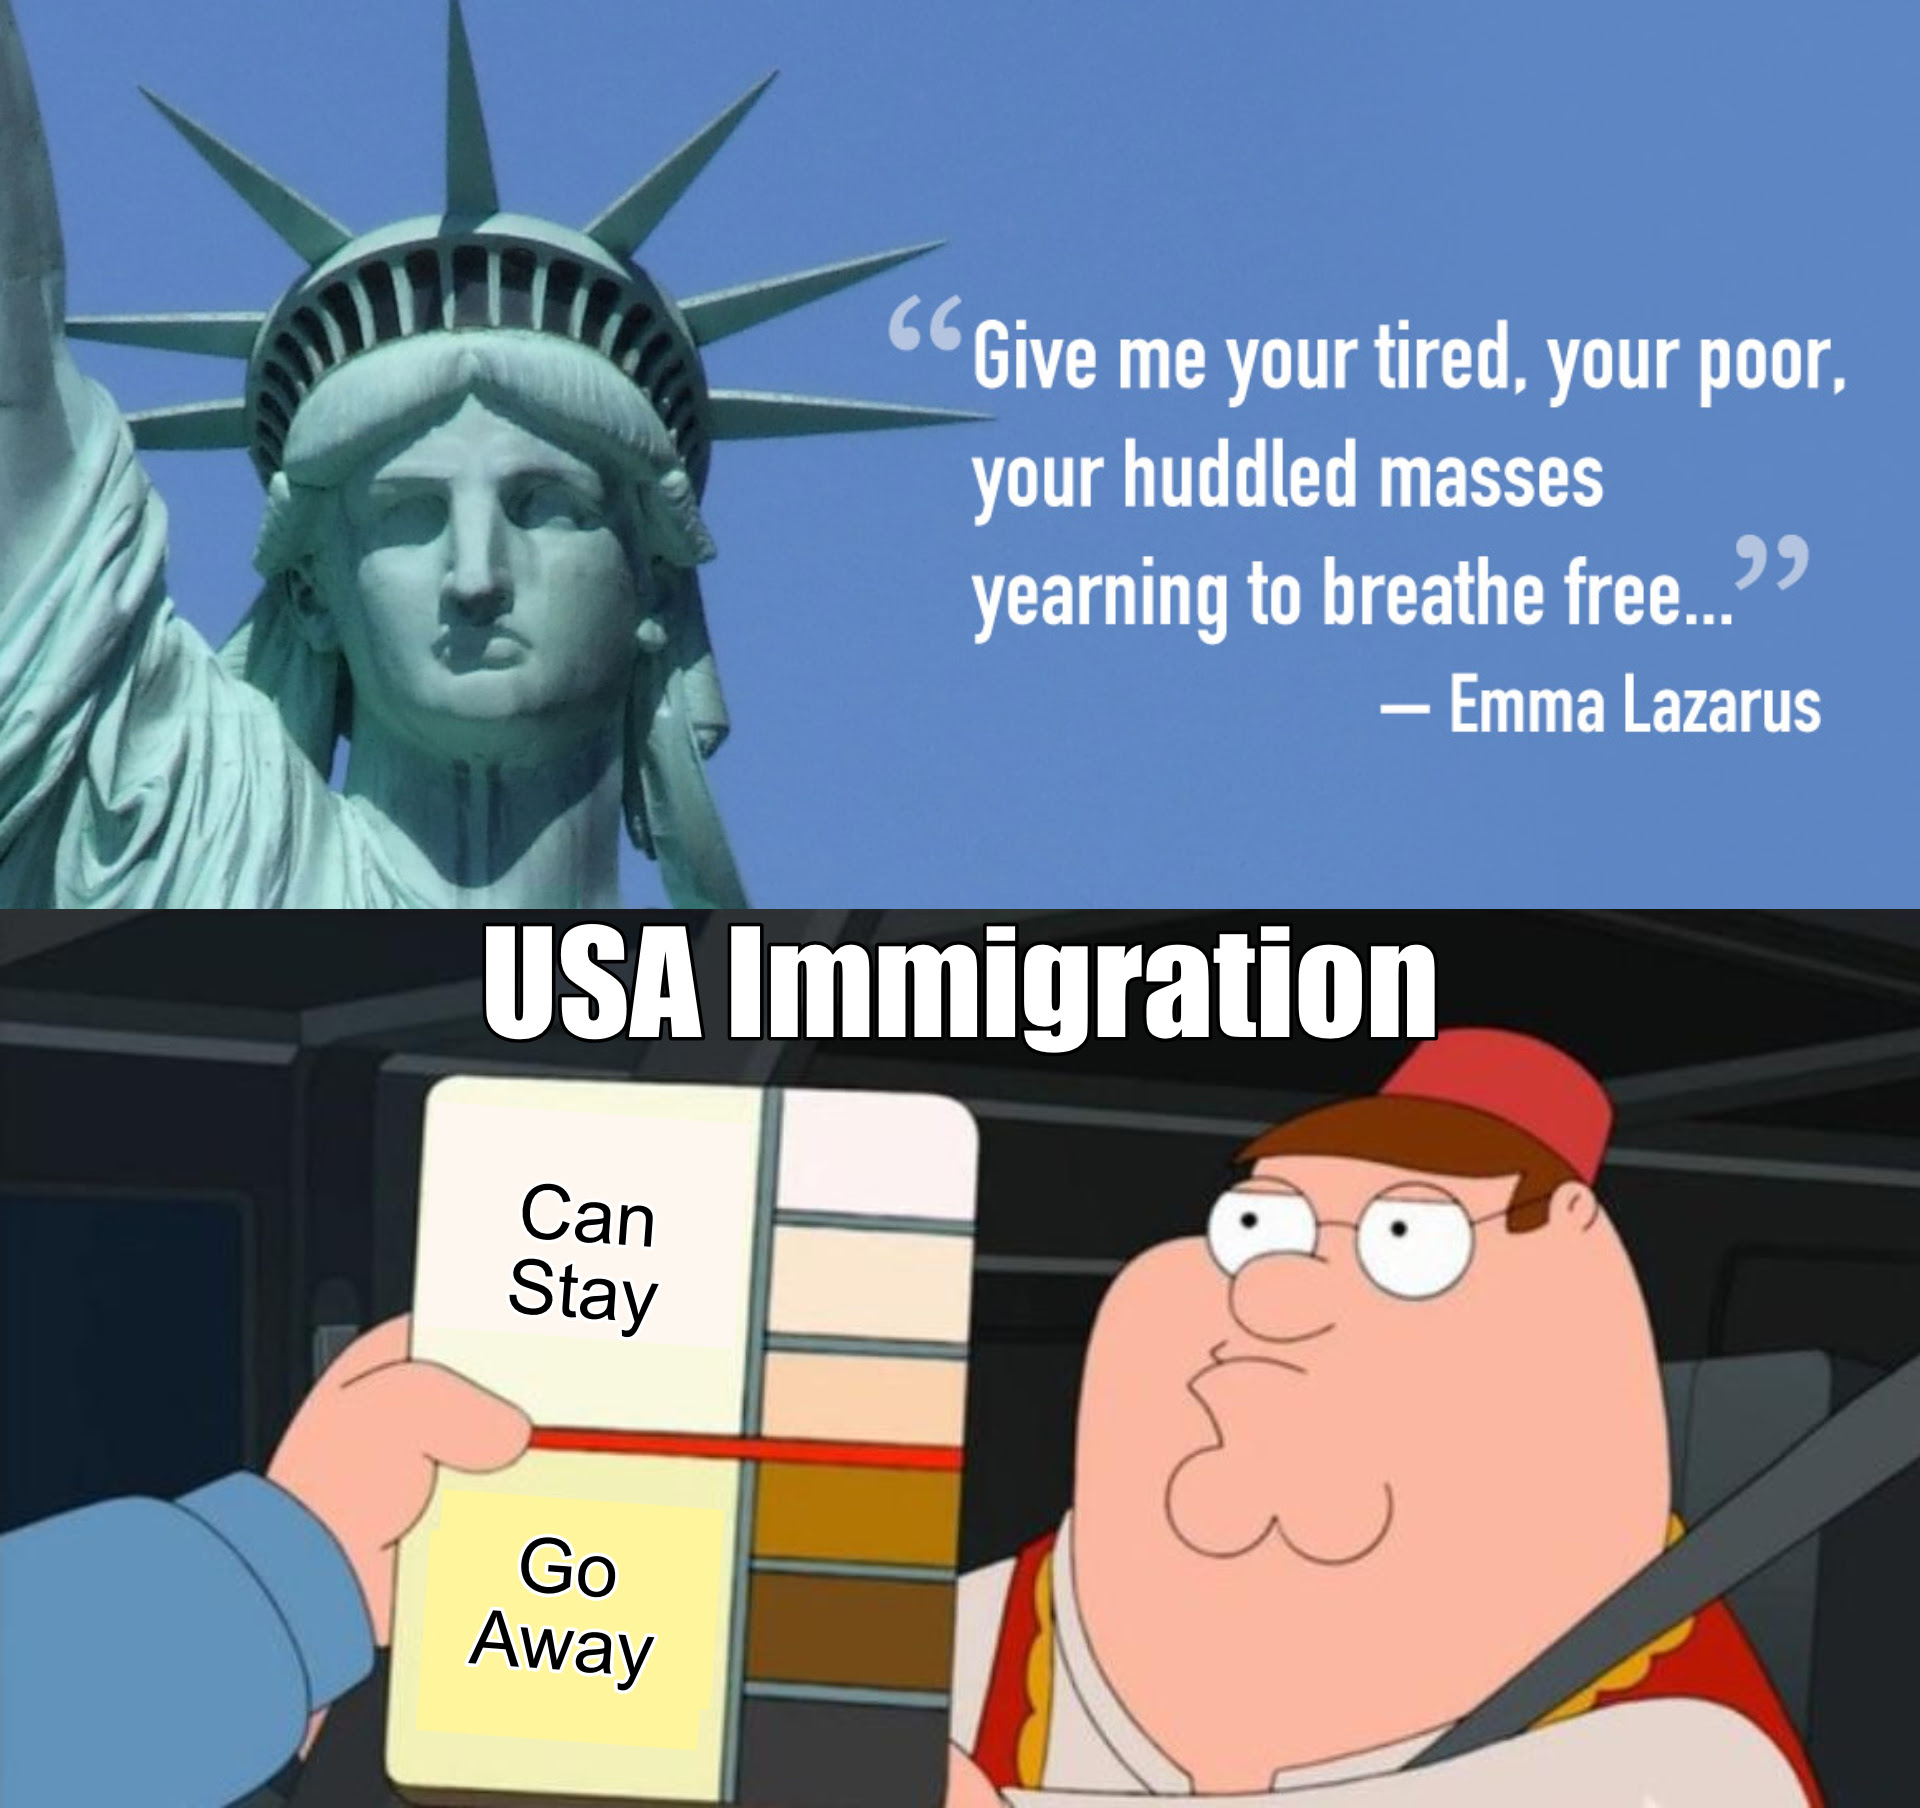 Image of Peter Griffin and the statue of liberty with a quote.